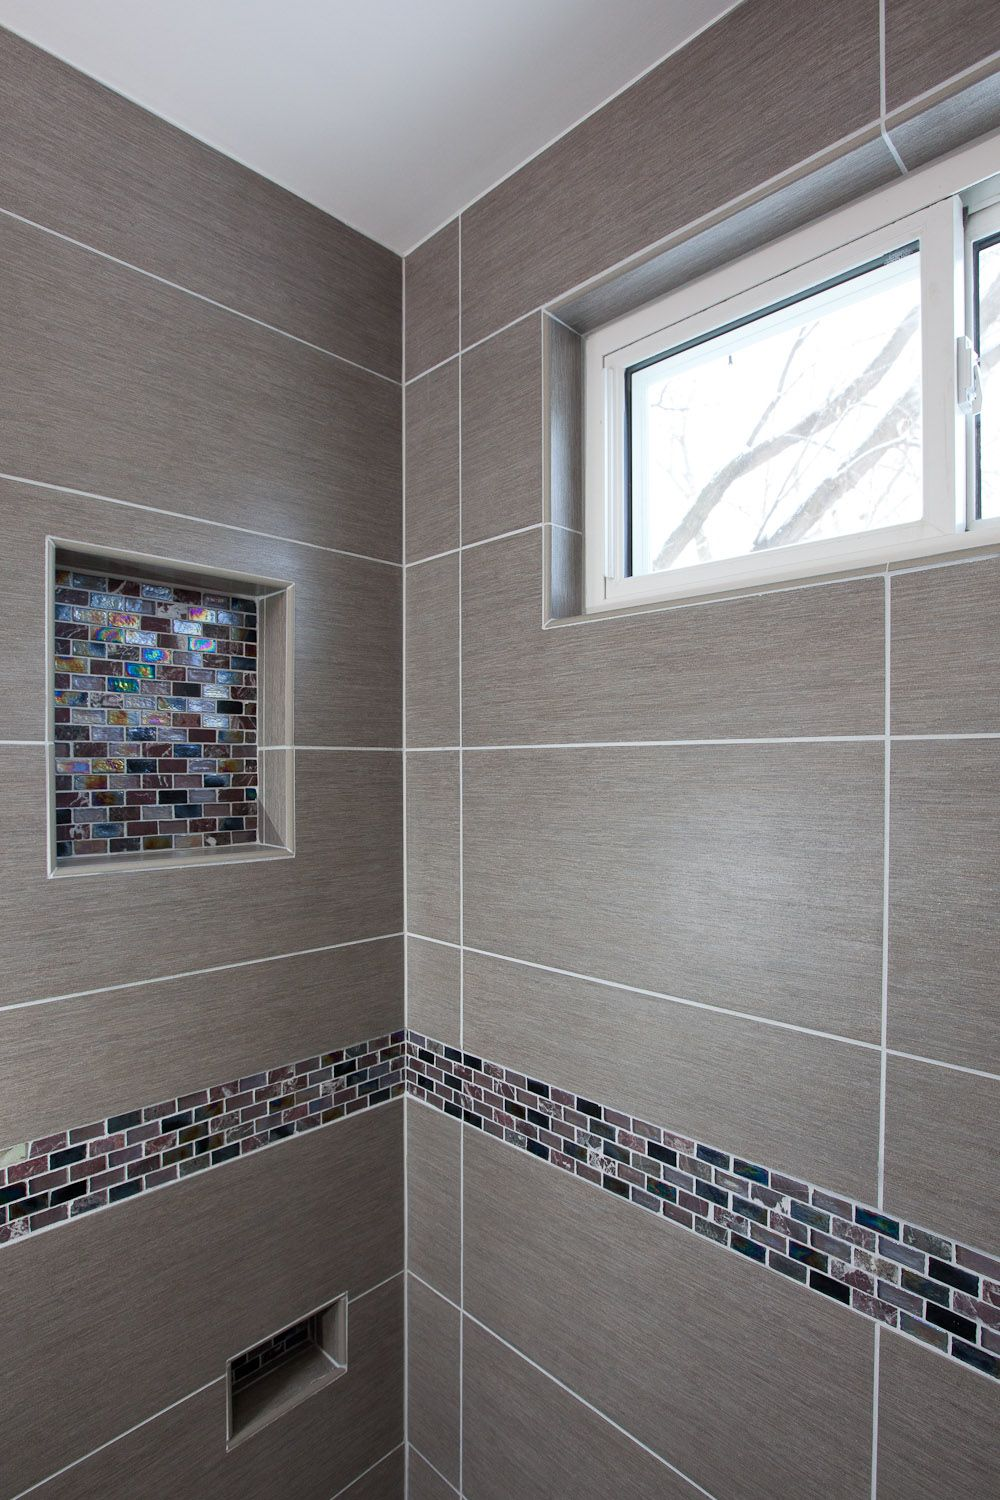 This Lake Minnetonka Bathroom Had Not 1 But 2 Very Dated Baths A Window Was Added To Bring In Natural Light Grey Porcelain Tile Chosen